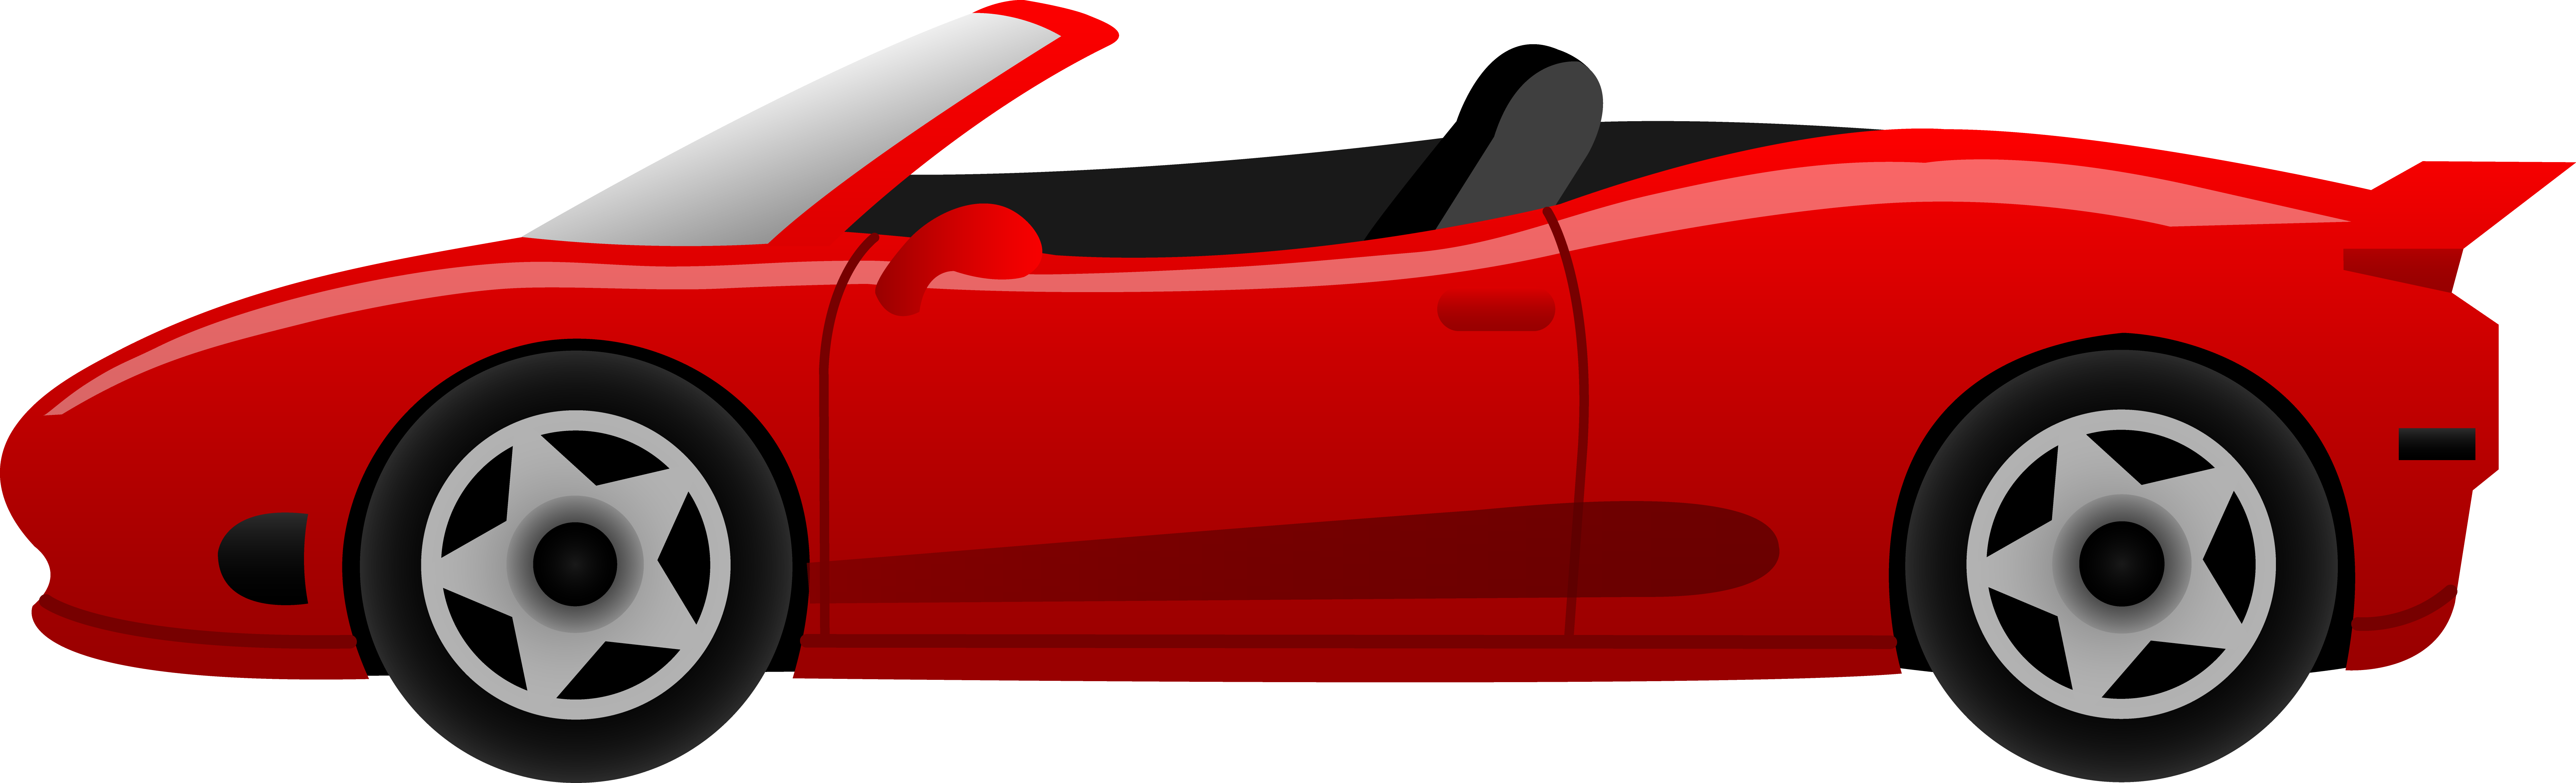 7863x2391 Sports Car Clipart Side View Free Clipart Images